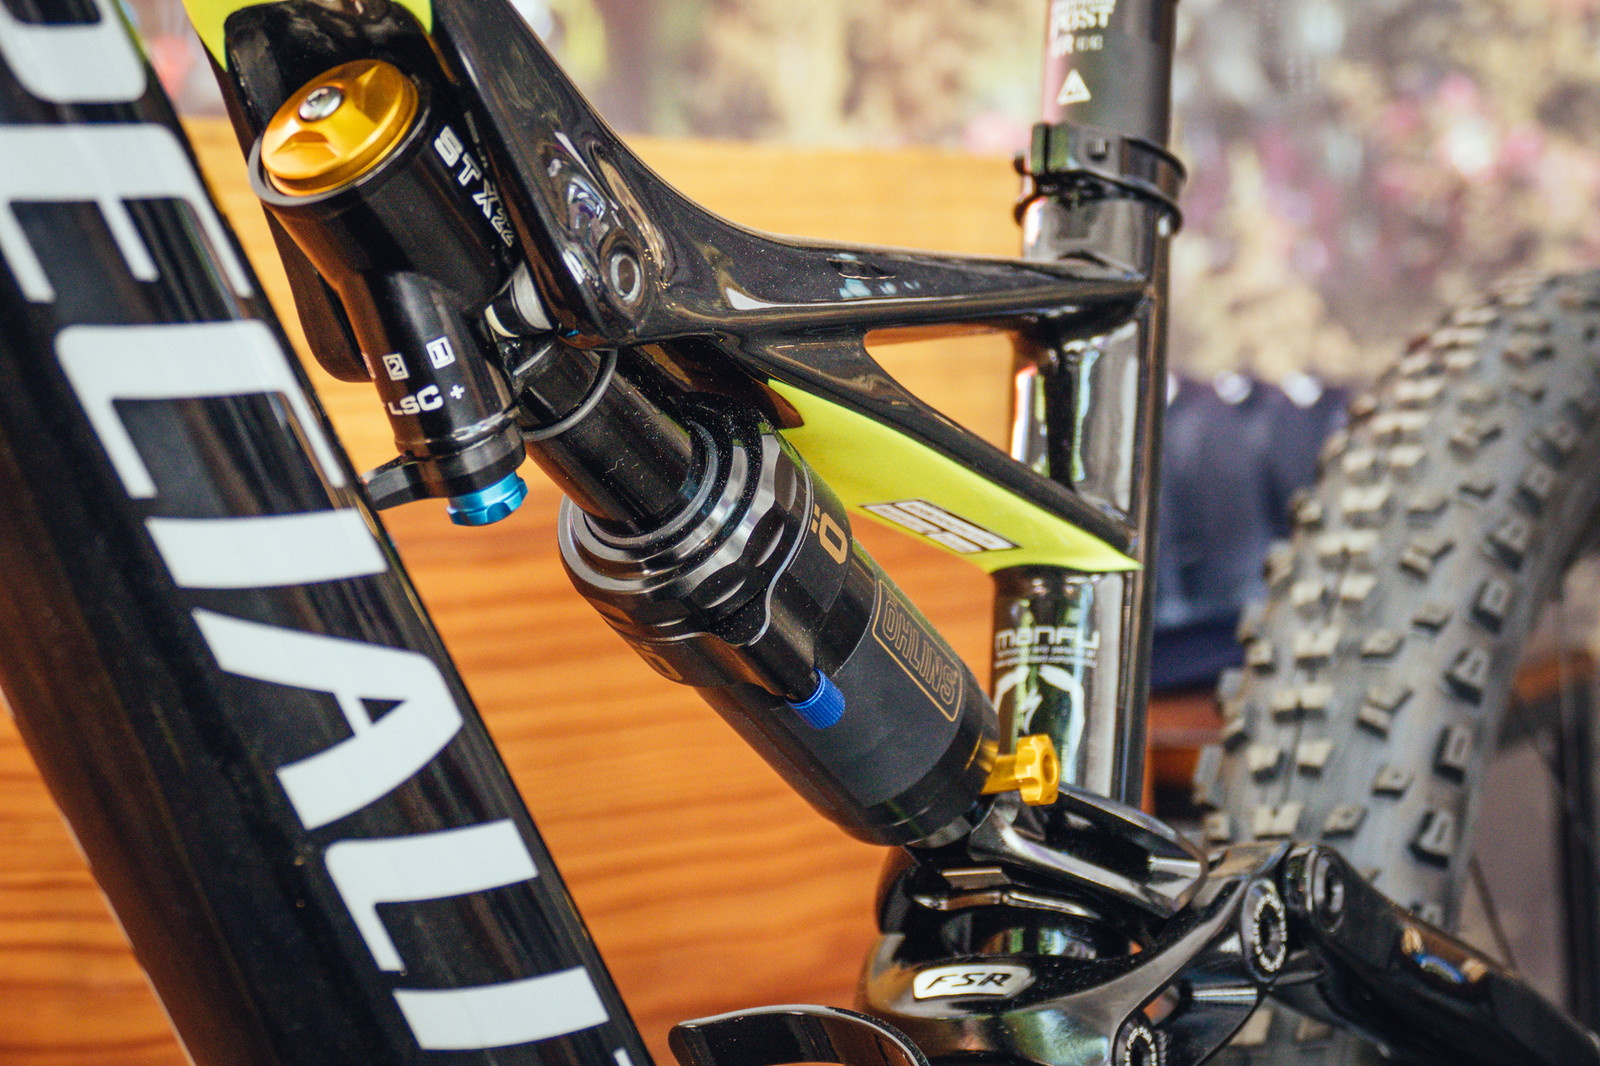 Custom Inline Öhlins STX 22 Shock - PIT BITS - New 2017 Products from Crankworx Whistler - Mountain Biking Pictures - Vital MTB